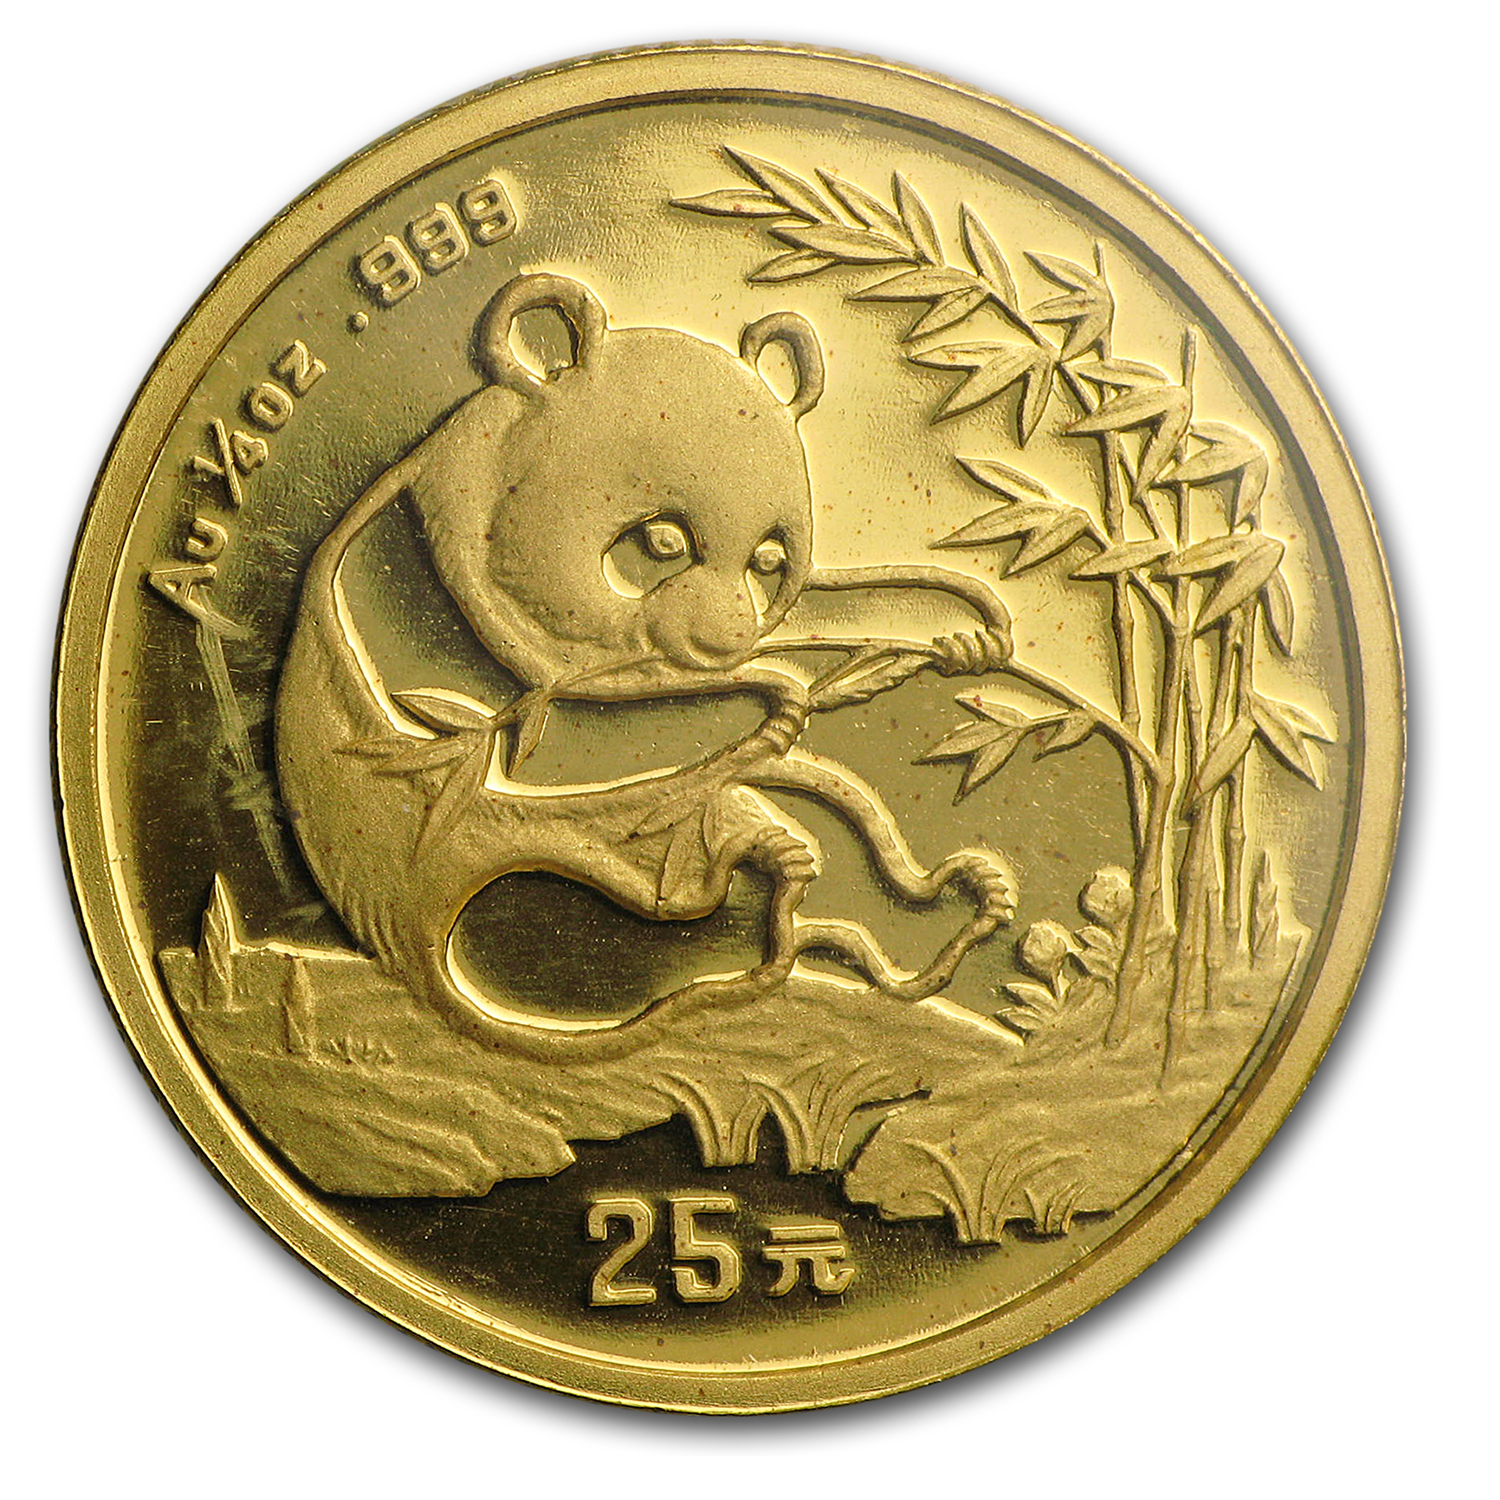 1994 China 1/4 oz Gold Panda Large Date BU (Sealed)